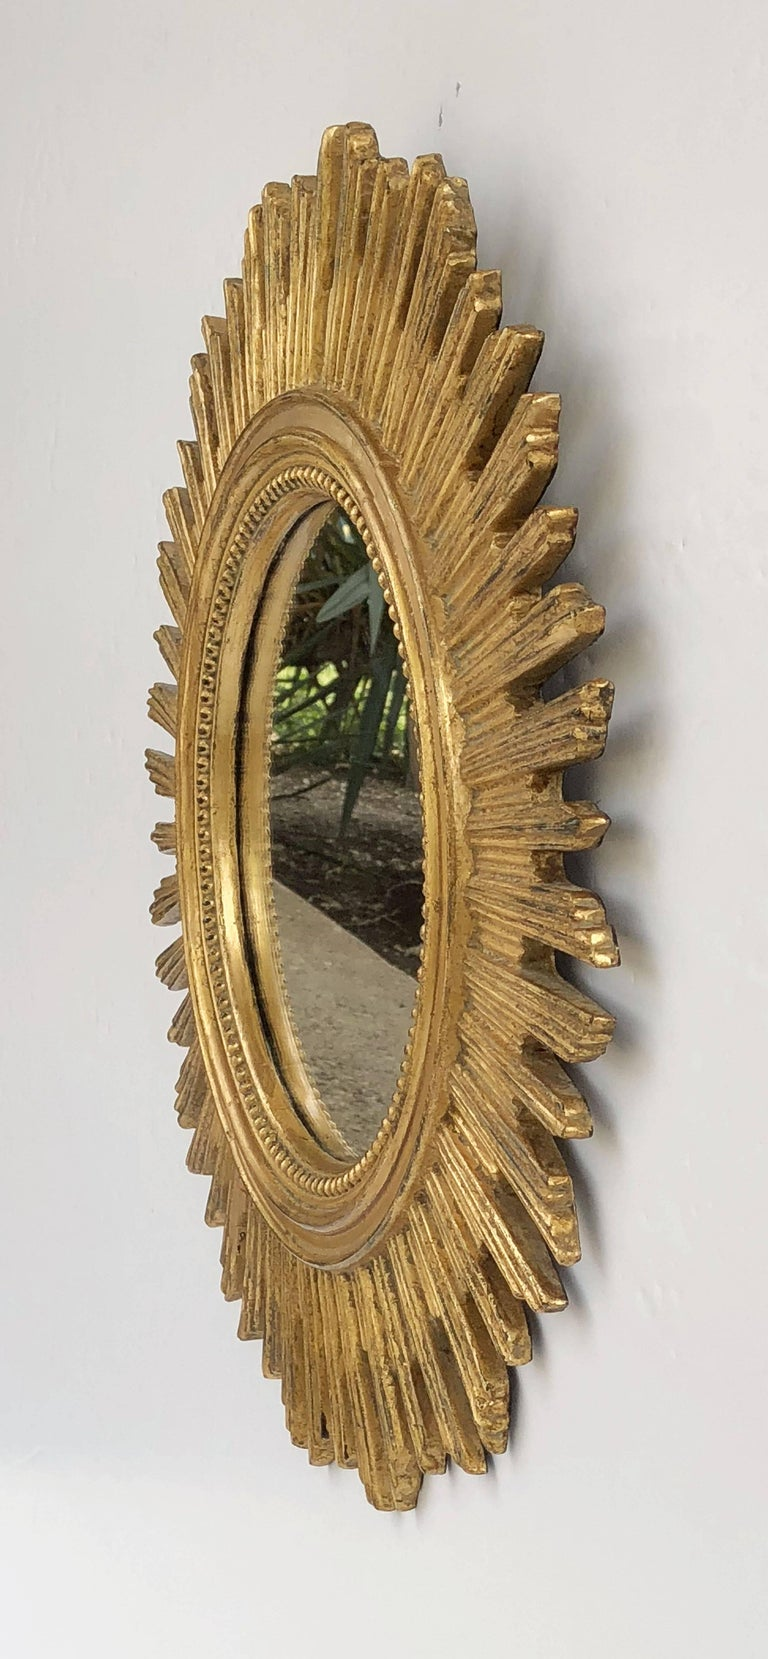 French Gilt Starburst or Sunburst Mirror (Diameter 20 1/2) In Excellent Condition For Sale In Austin, TX